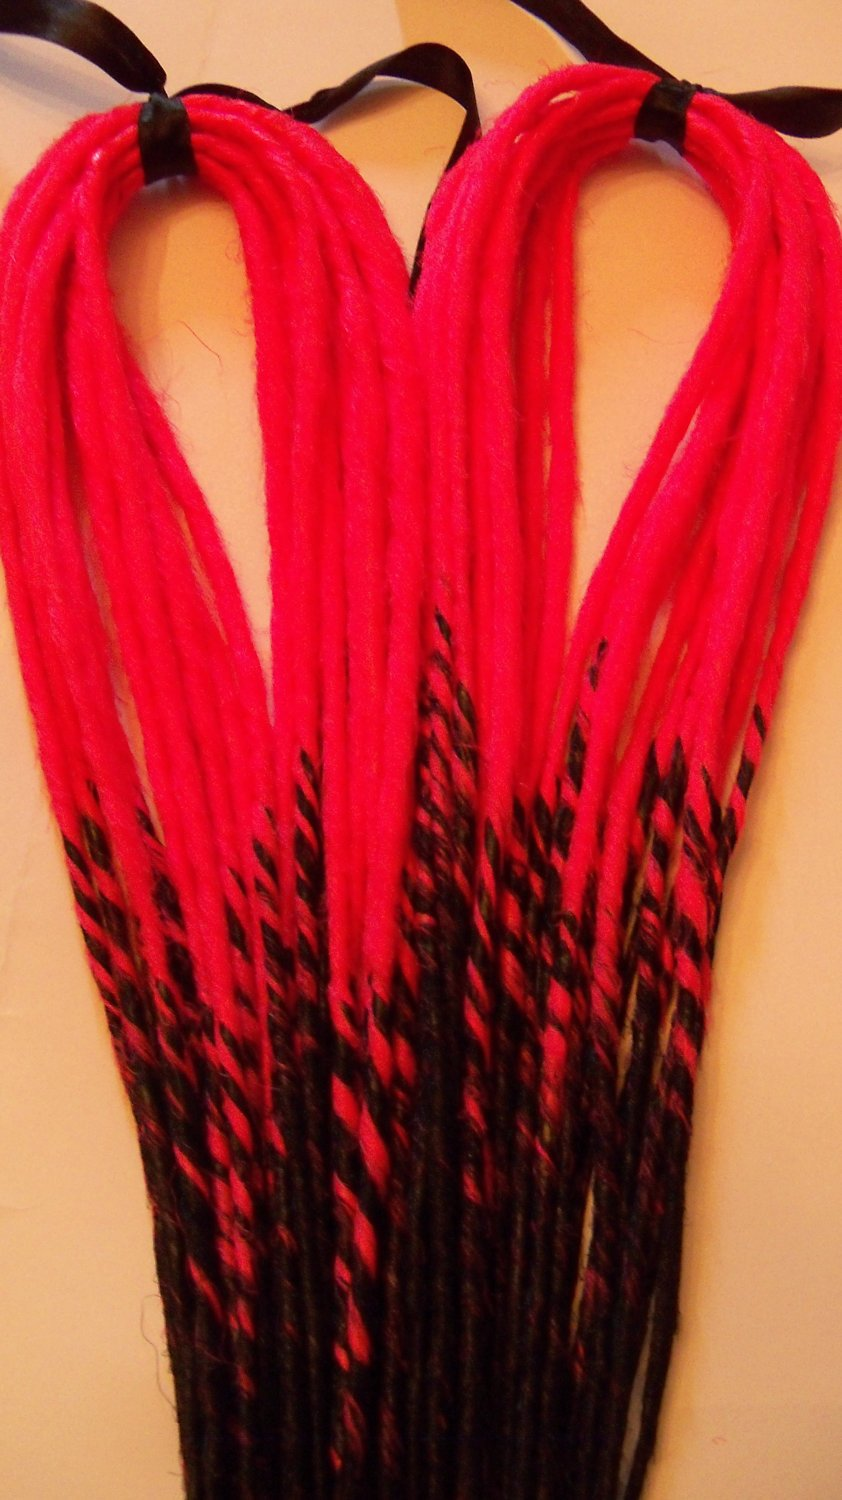 50 Custom Transitional Ombre Synthetic Dreads Dreadlock Hair Extensions or Dread Falls